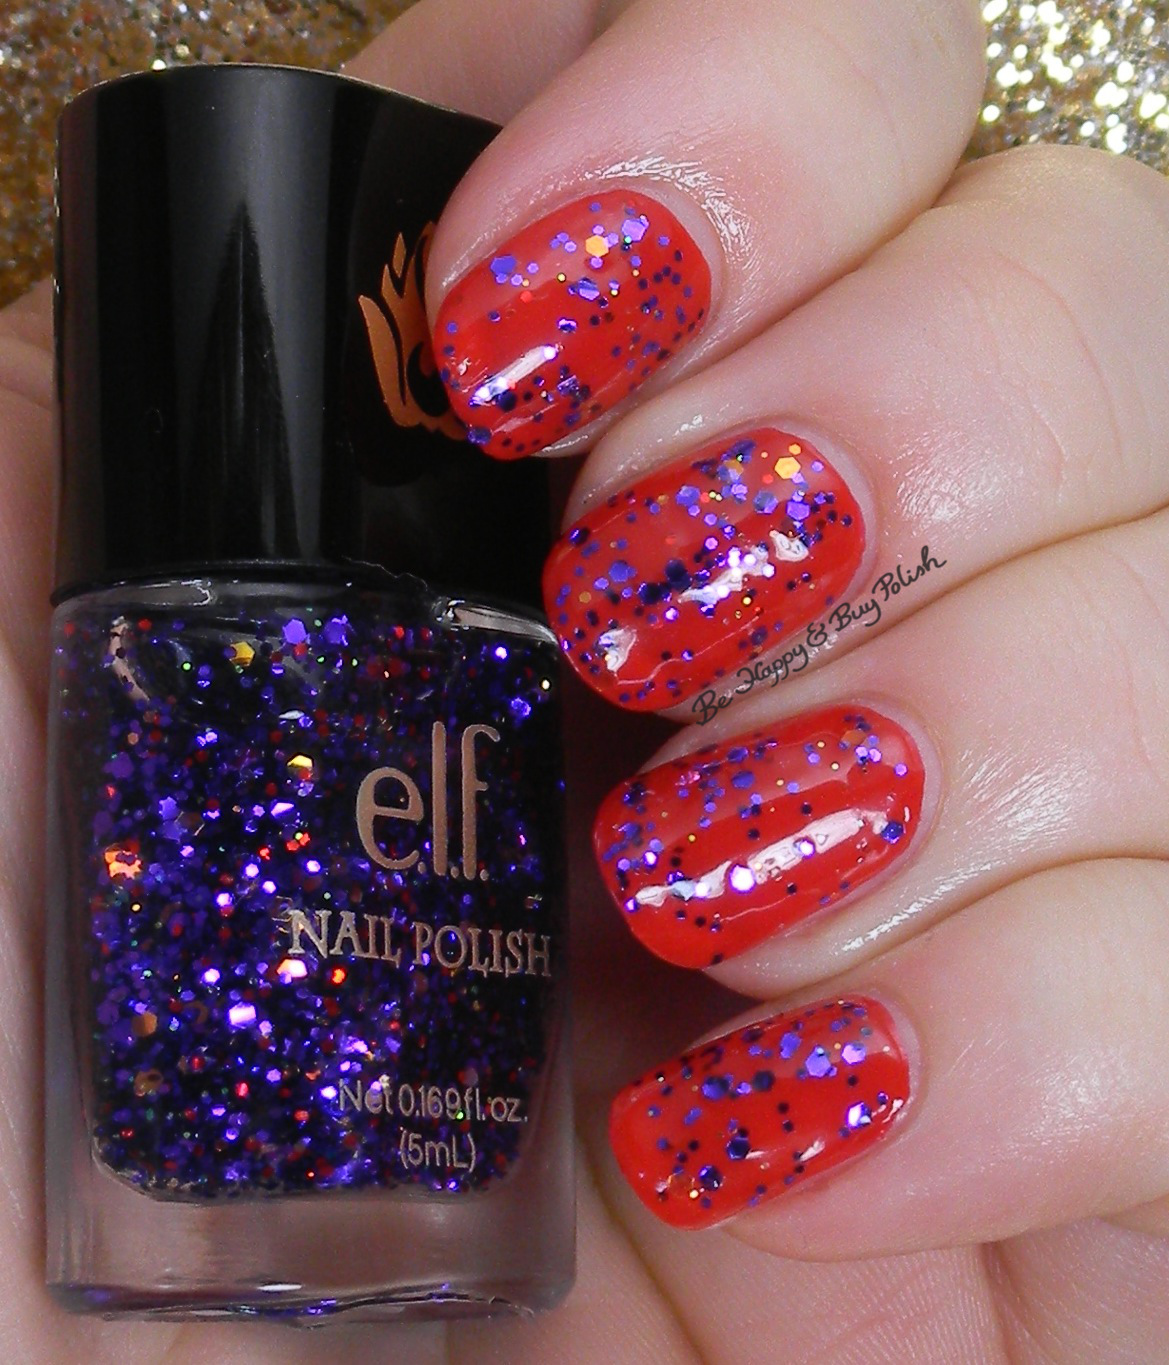 reviews | Be Happy and Buy Polish | Page 99